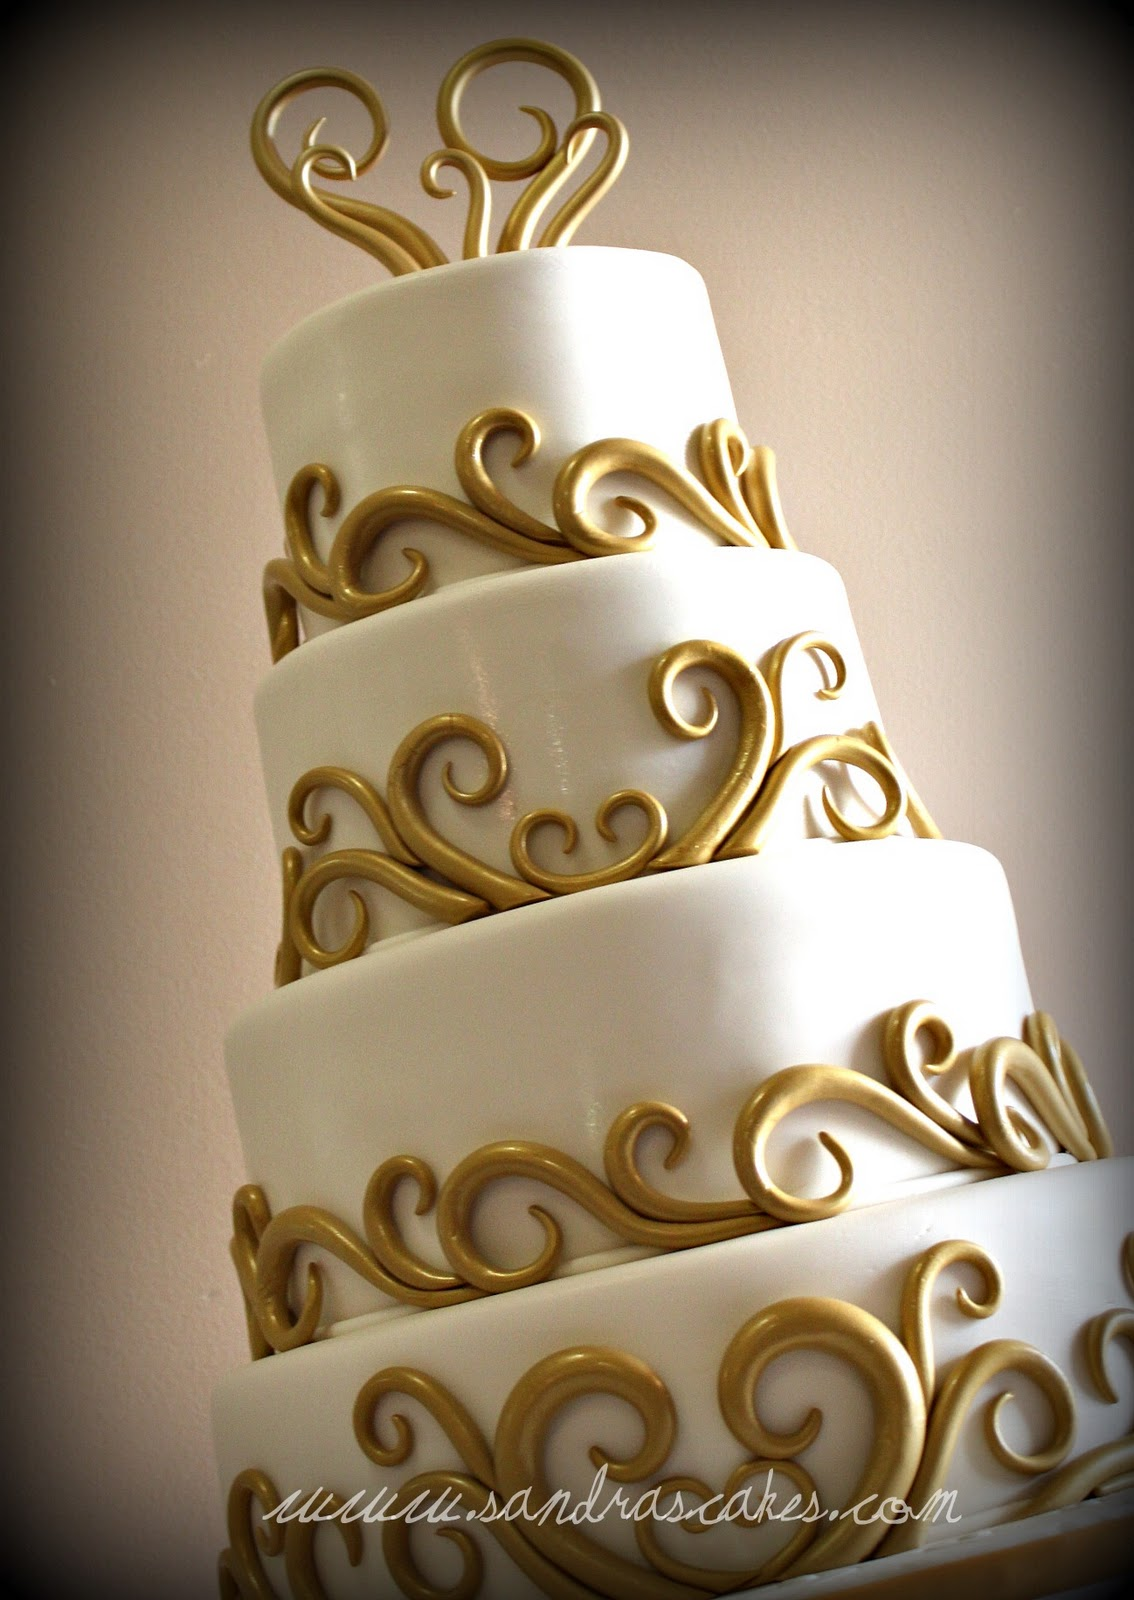 New Latest Cake Images : Latest Wedding Cakes